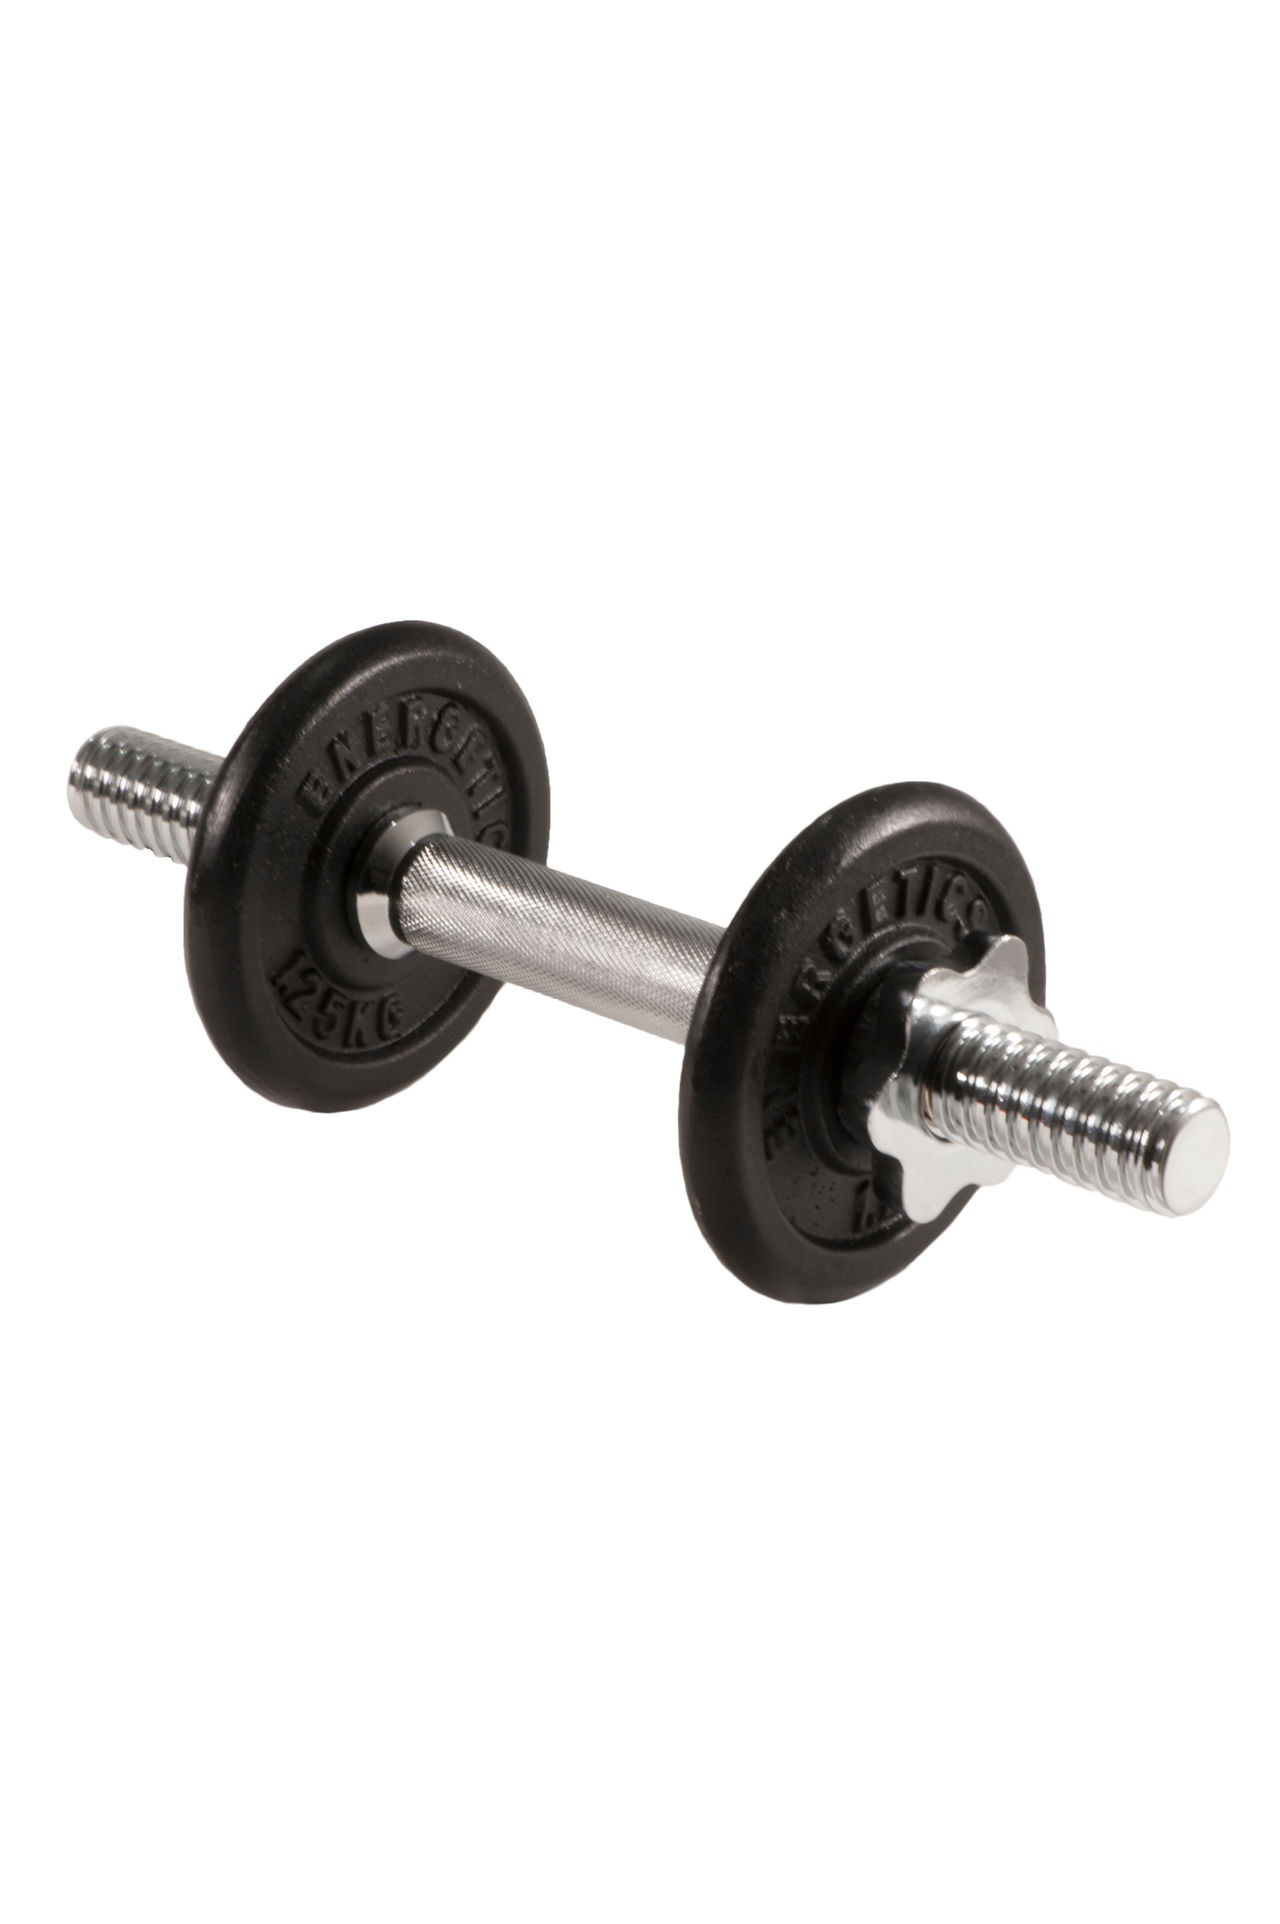 dumbbell Bodybuilding Chrome Detailed Admission Dumb-bell Dumbbell Exemptly Exercise With Dumb-bells Fitness Free Plate Health High-grade Steel Home Training Muscle Musculature Sport Sports Device Training